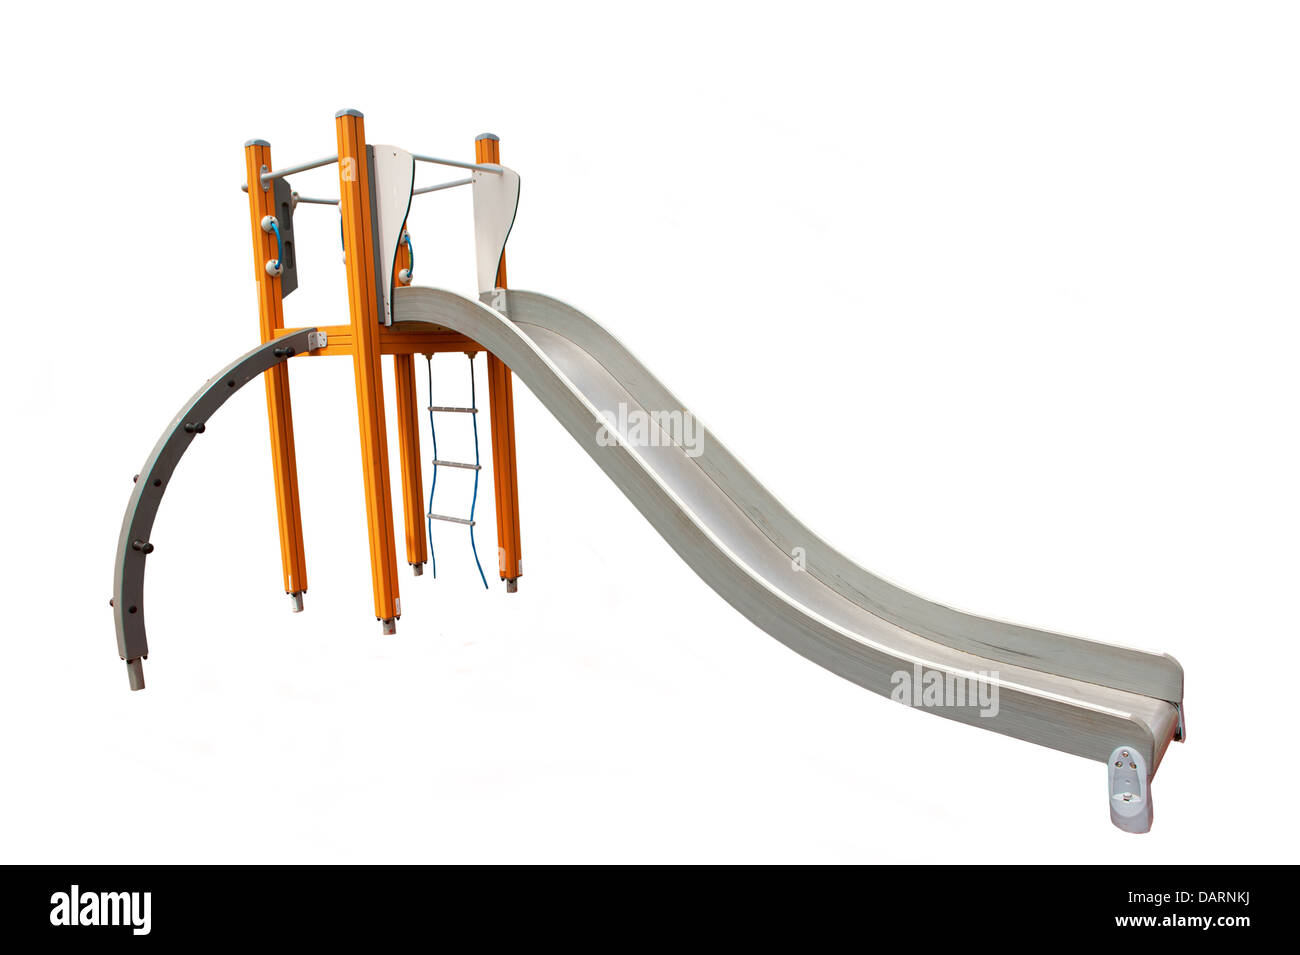 Outdoor Playground equipment on a white background - Stock Image